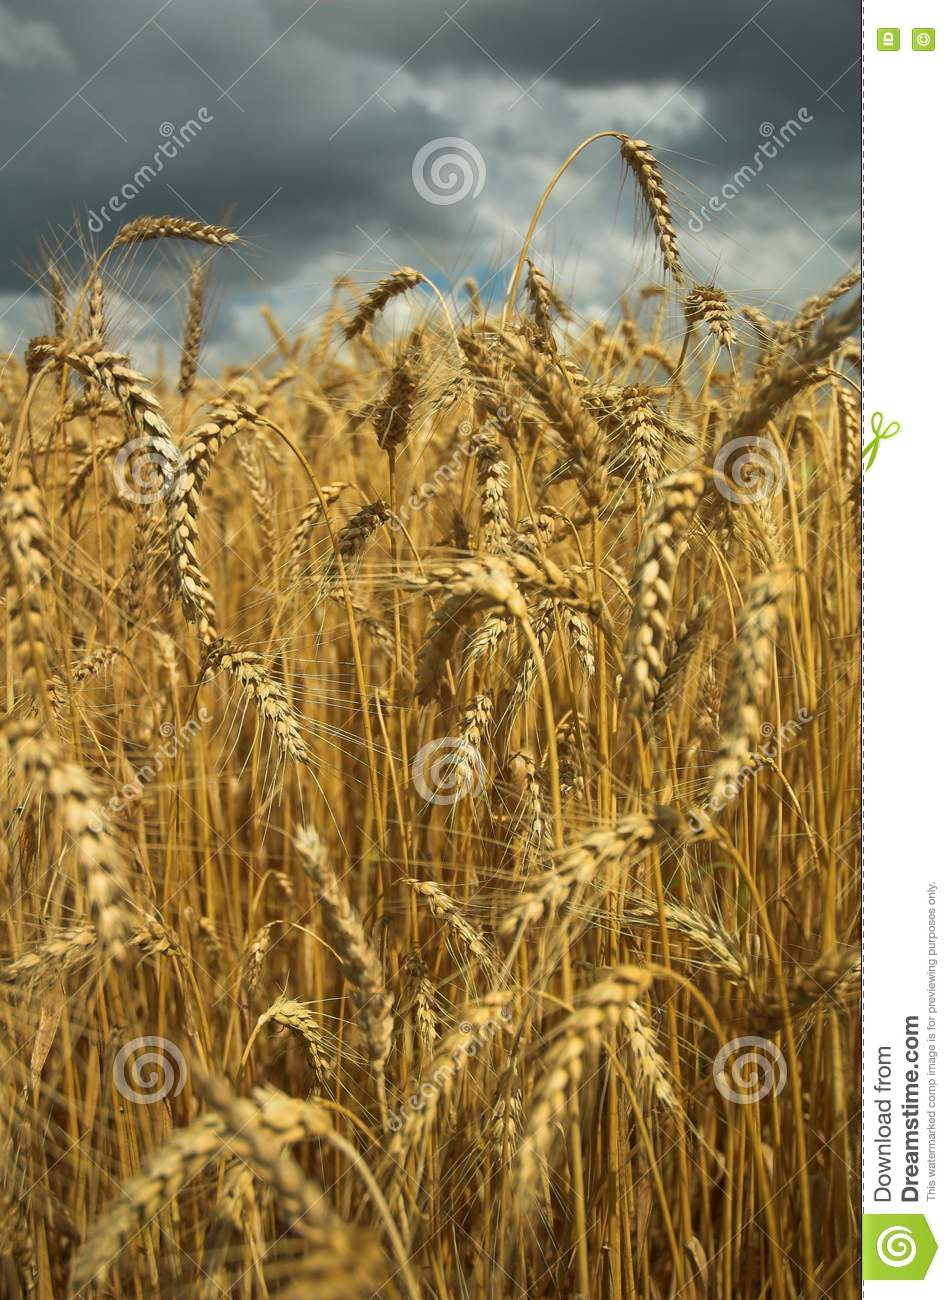 Free Stock Photo Wheat Field And Dark Sky Picture Image 5857175